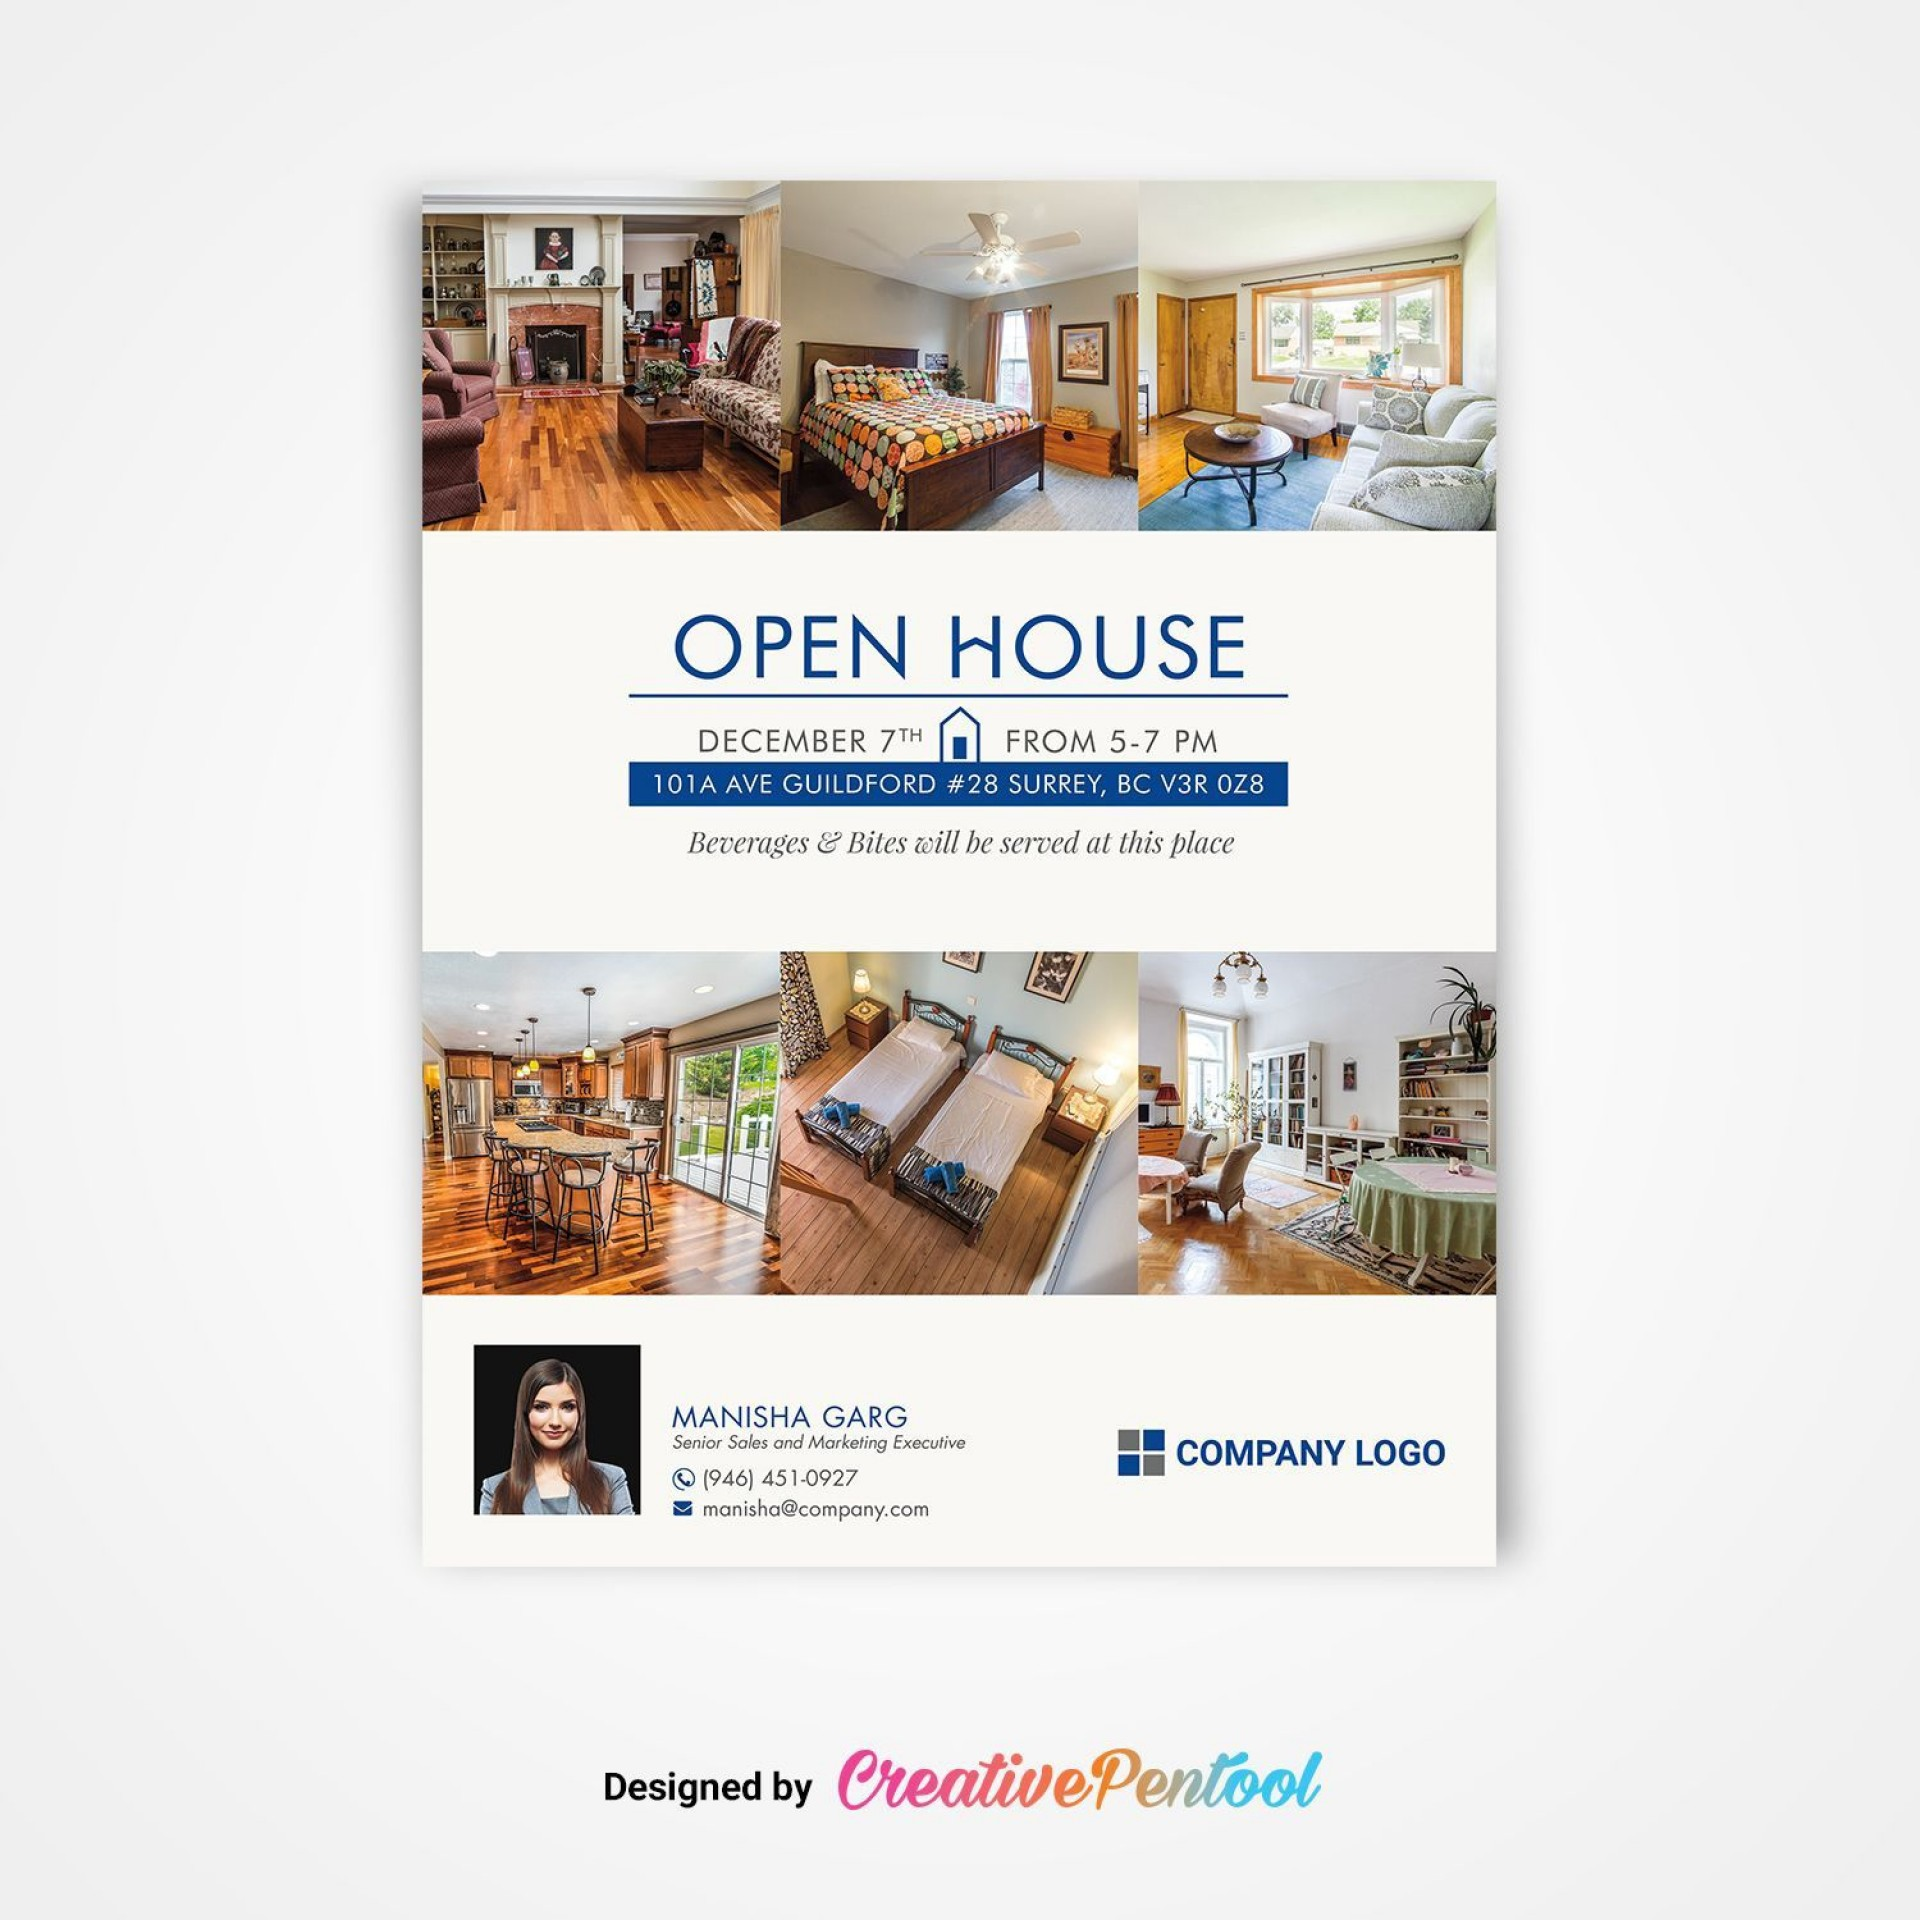 001 Imposing Open House Flyer Template Free Highest Quality  Microsoft Word School Christma1920